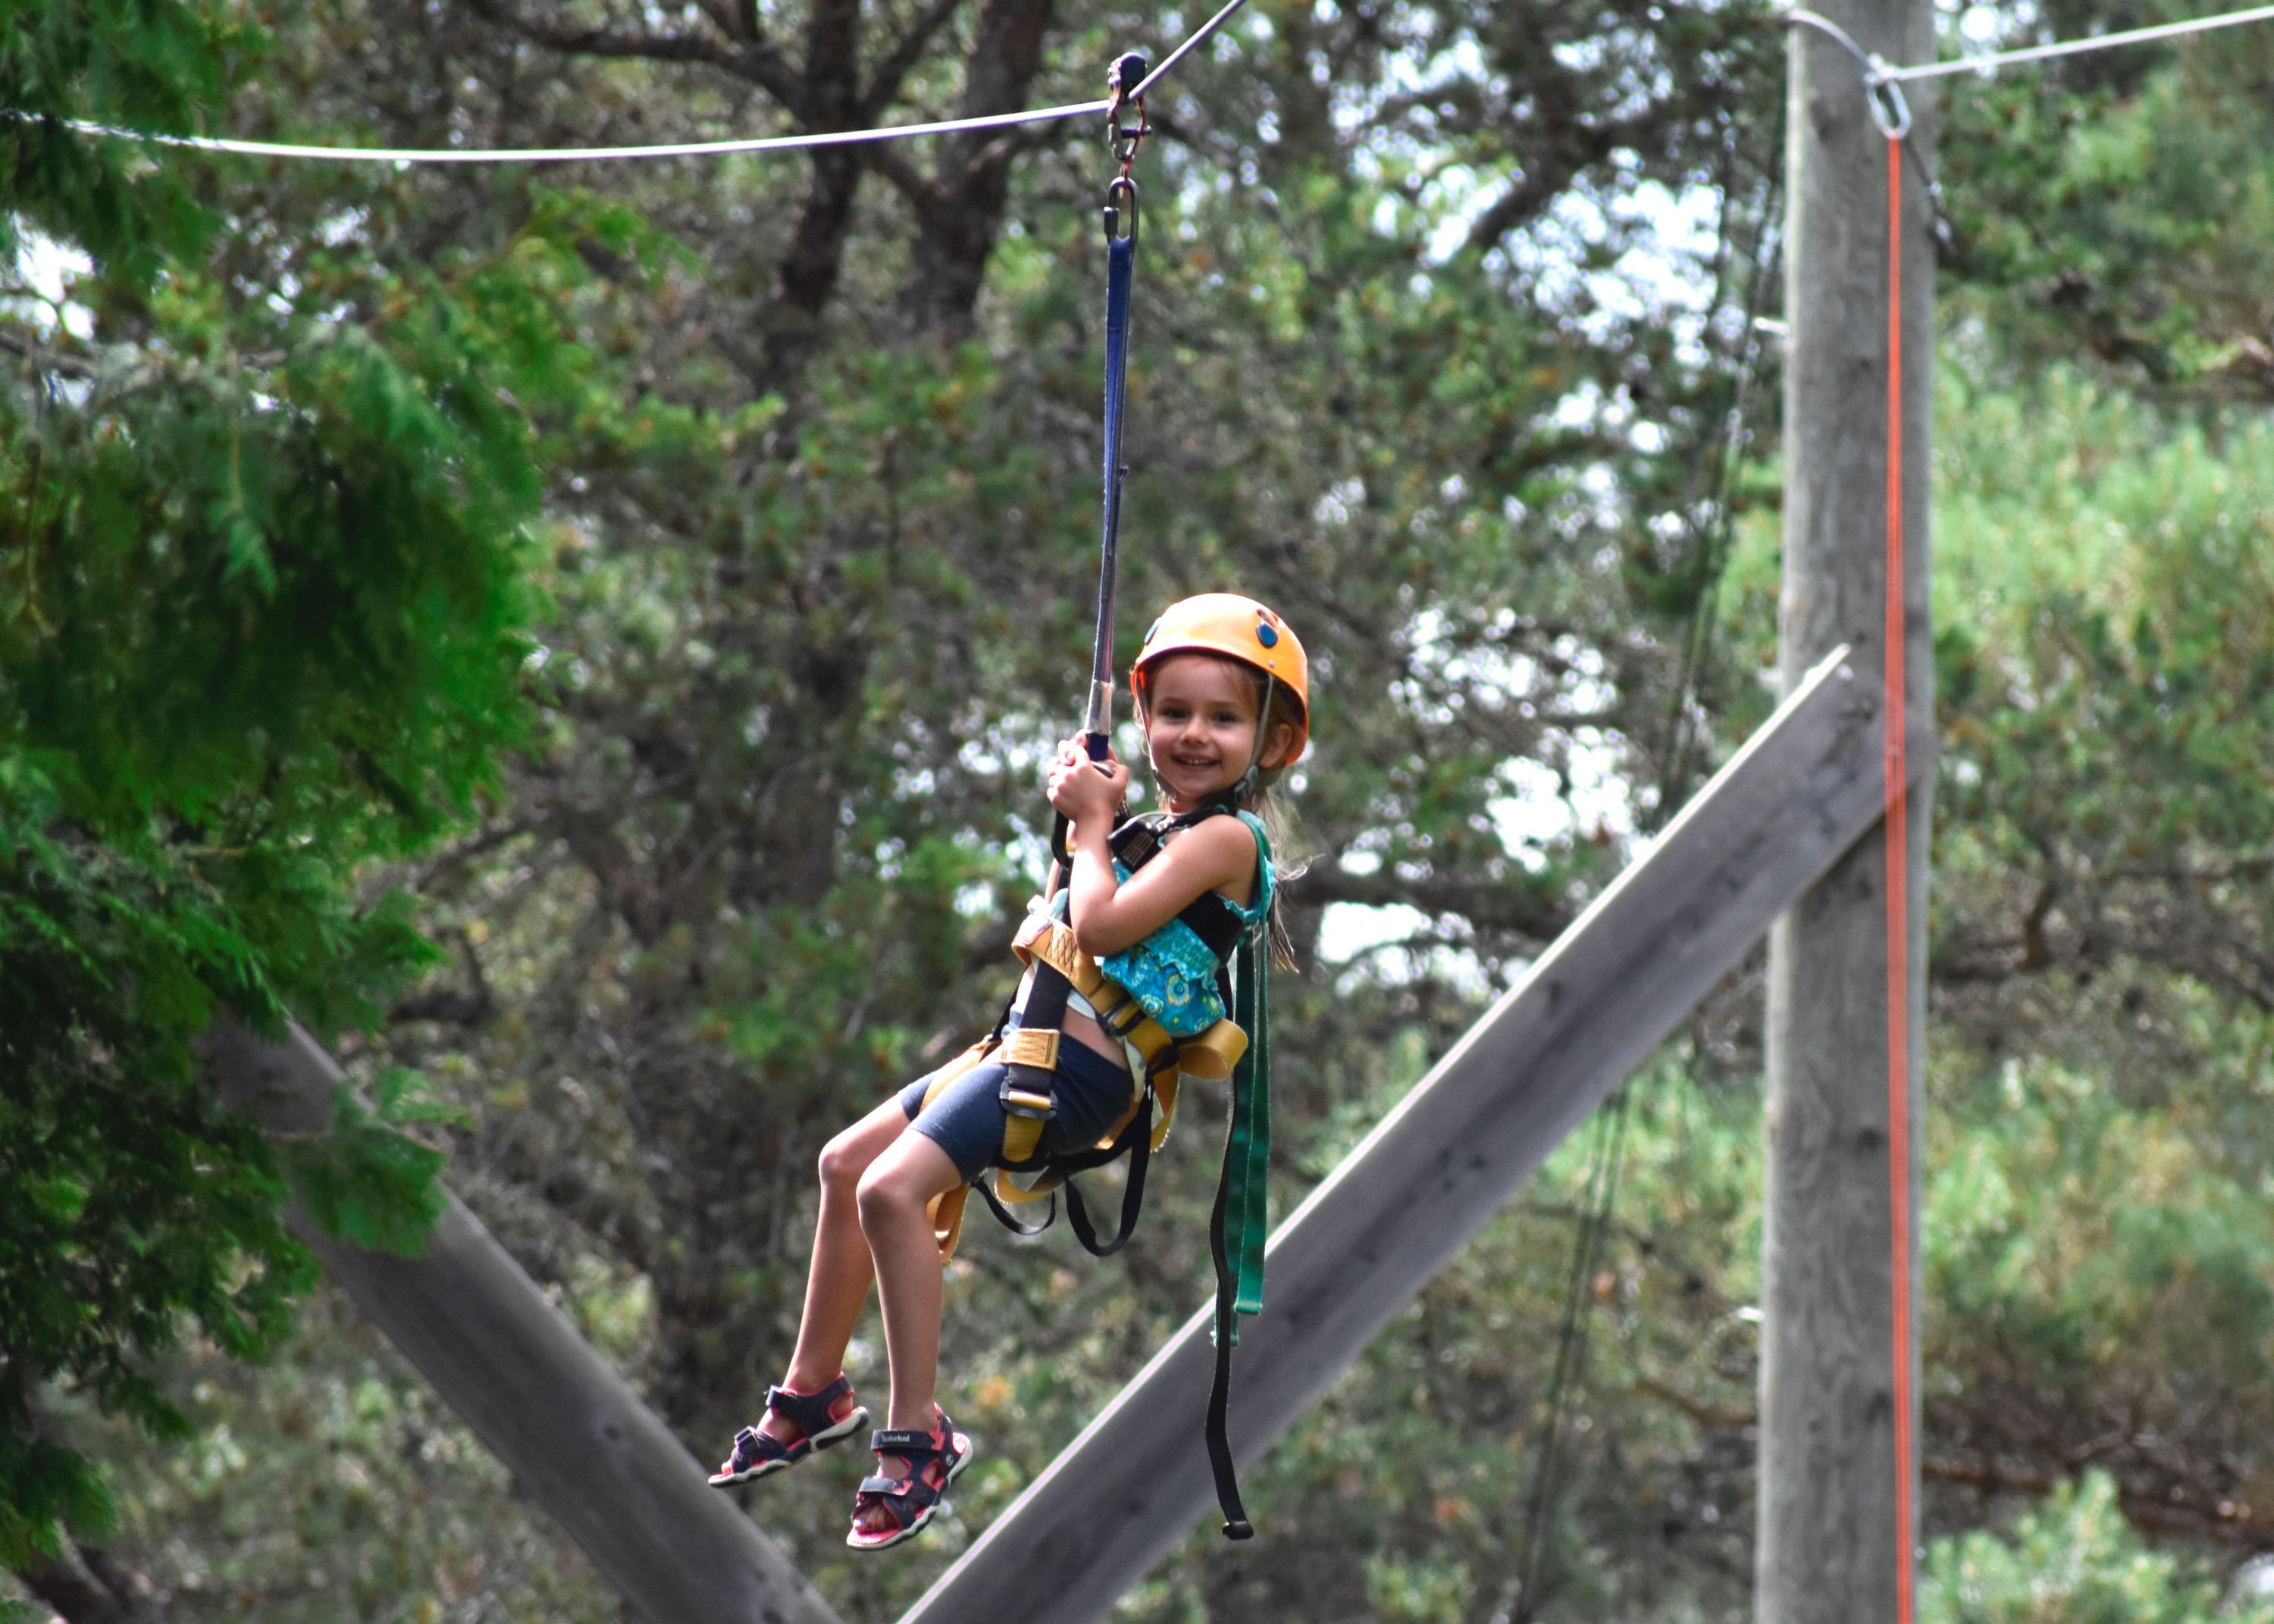 Camper on zipline outside at christian adventure summer camp in Haliburton, Ontario